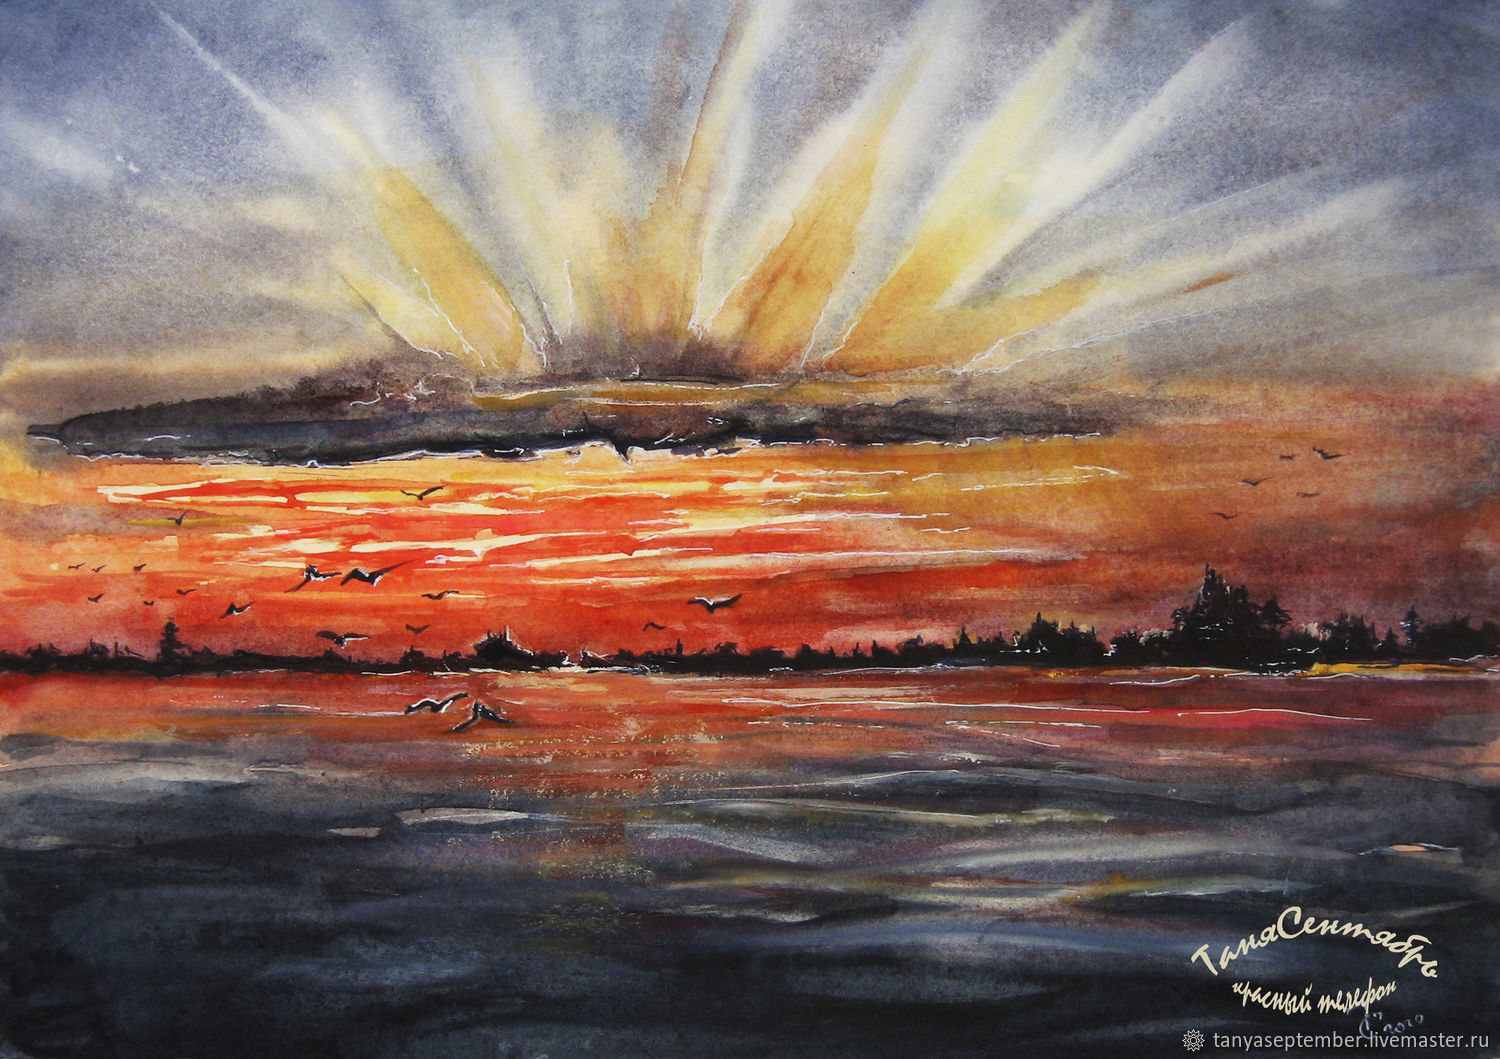 Watercolor painting with water lake river sky OVER the LAKE, Pictures, Moscow,  Фото №1